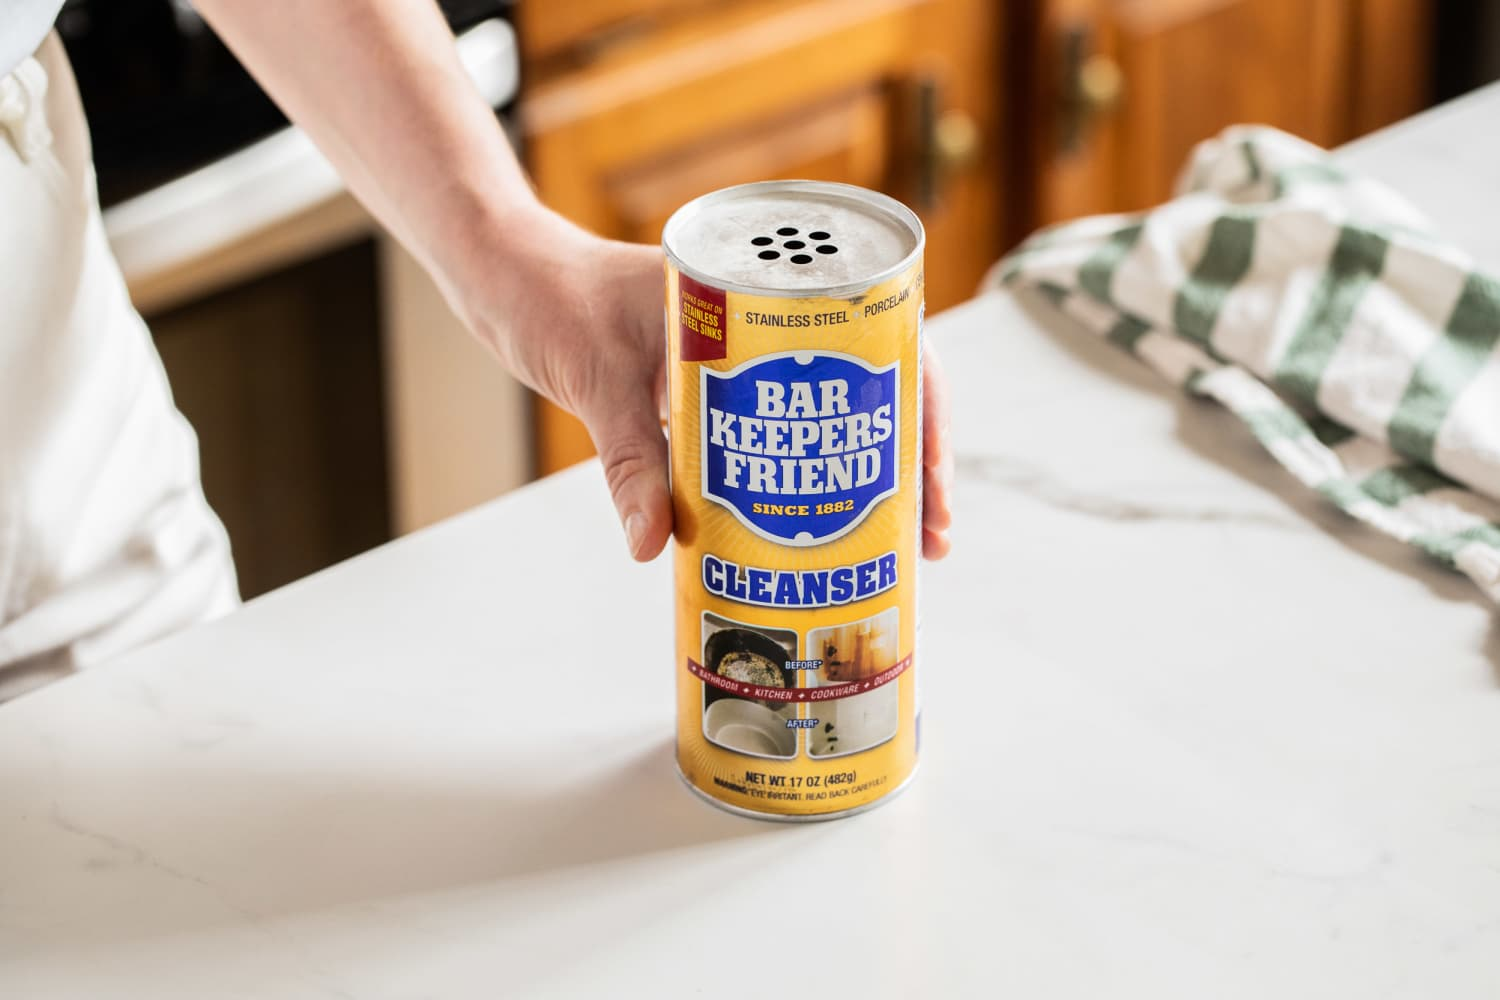 The First Thing You Should Do with a New Bottle of Bar Keepers Friend